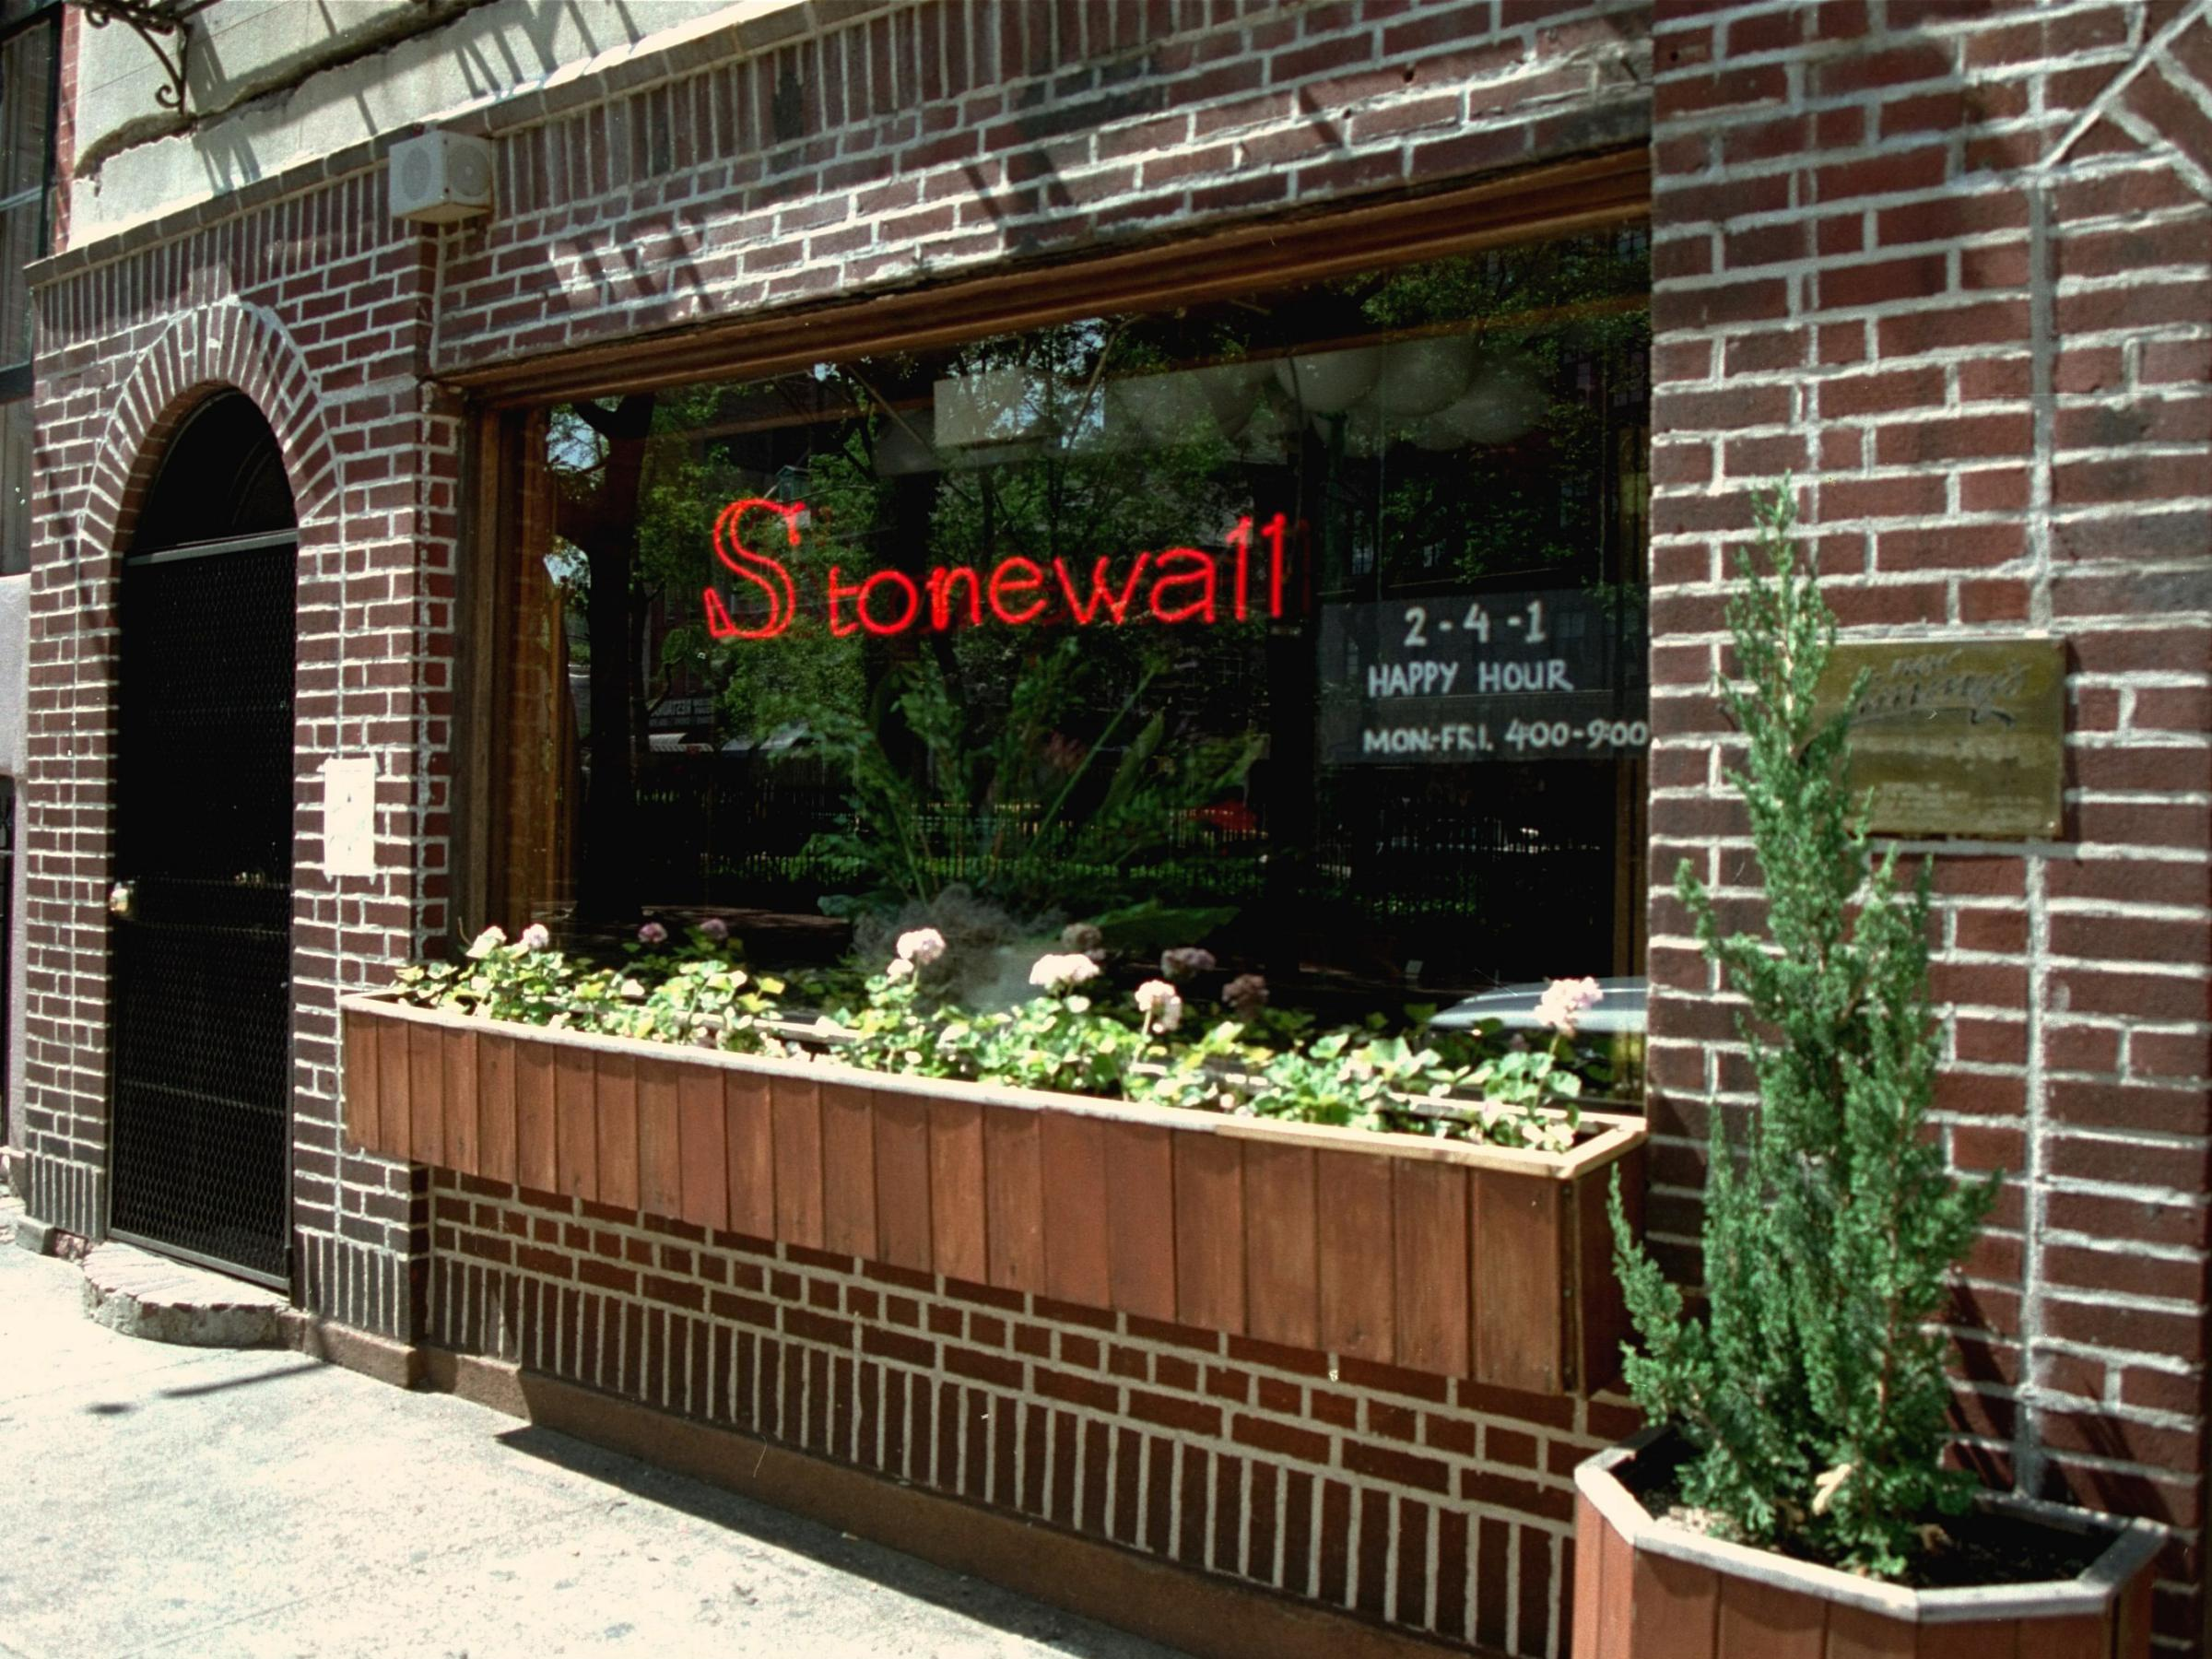 stonewall gay dating site The stonewall inn, often shortened to stonewall, is a gay bar and recreational tavern in the greenwich village neighborhood of lower manhattan, new york city, and the site of the stonewall.